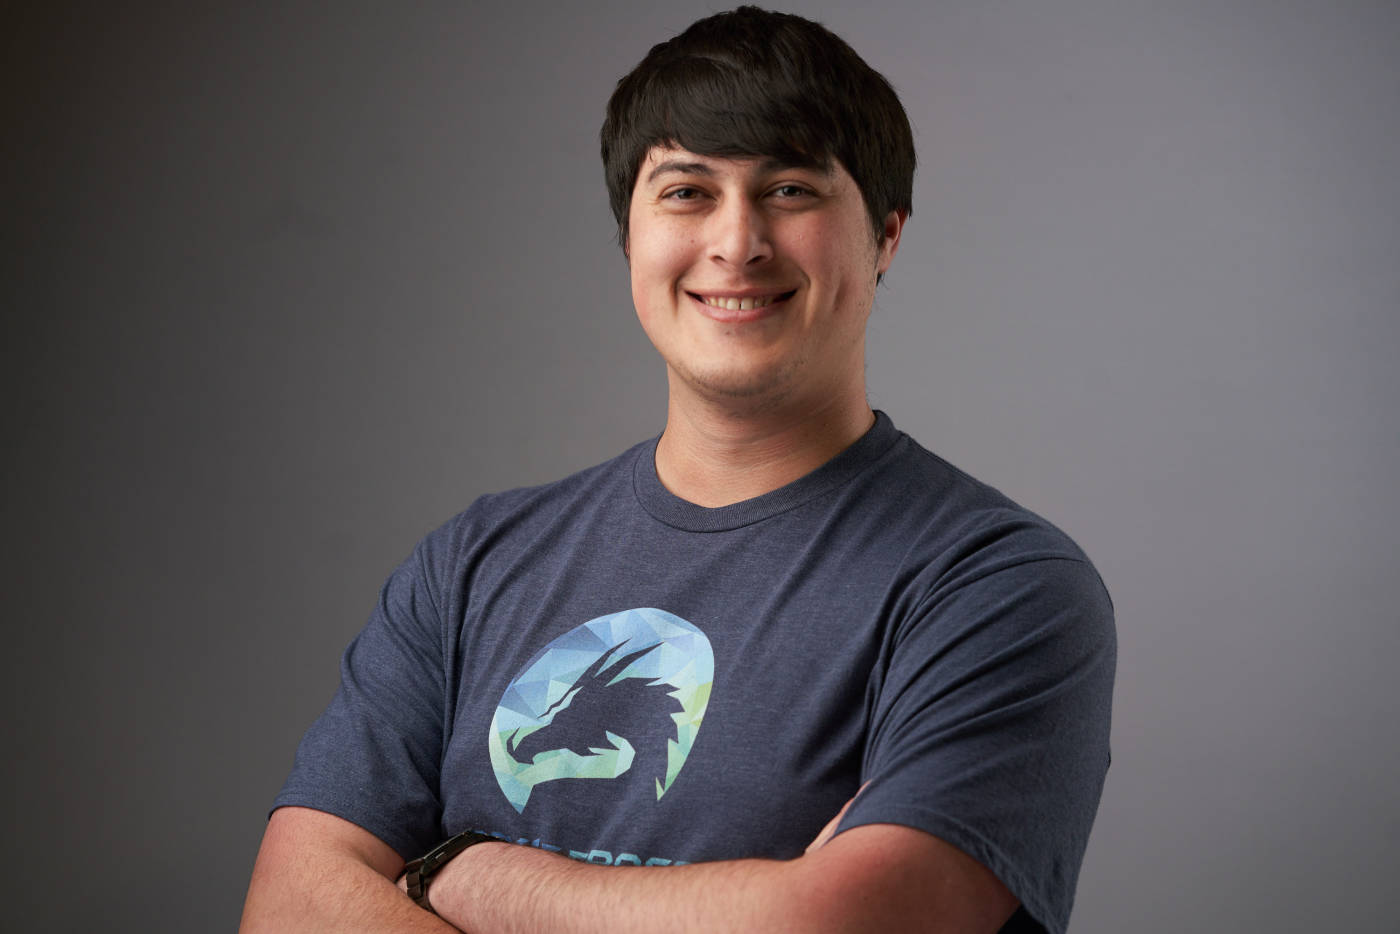 Judah Perez, co-founder Cookie Dragon Games